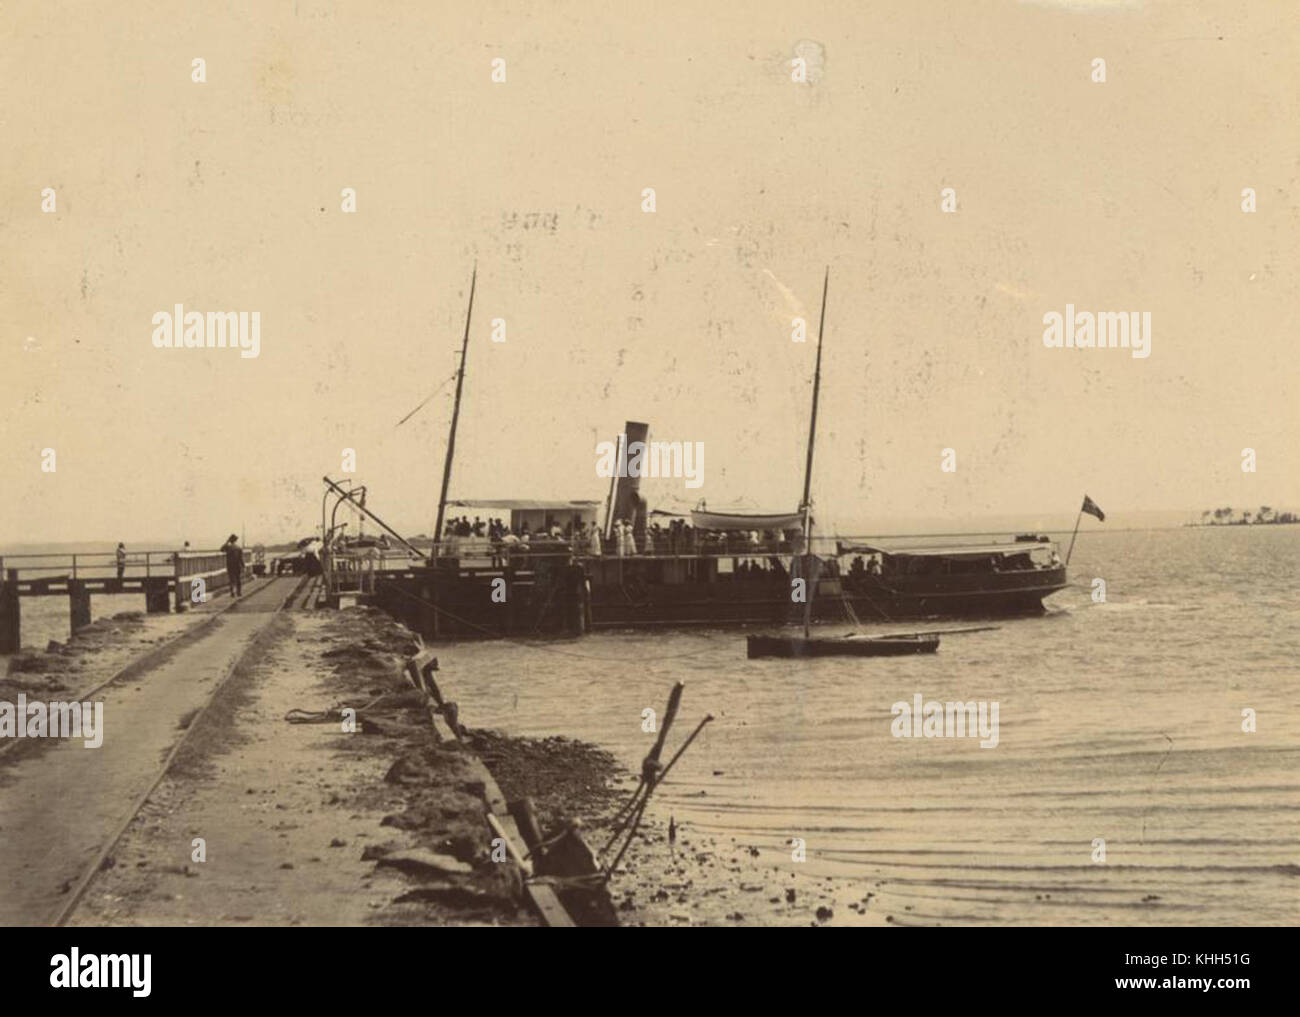 1 235133 Passenger steamship docked at the Dunwich Jetty, North Stradbroke Island, ca. 1890 - Stock Image